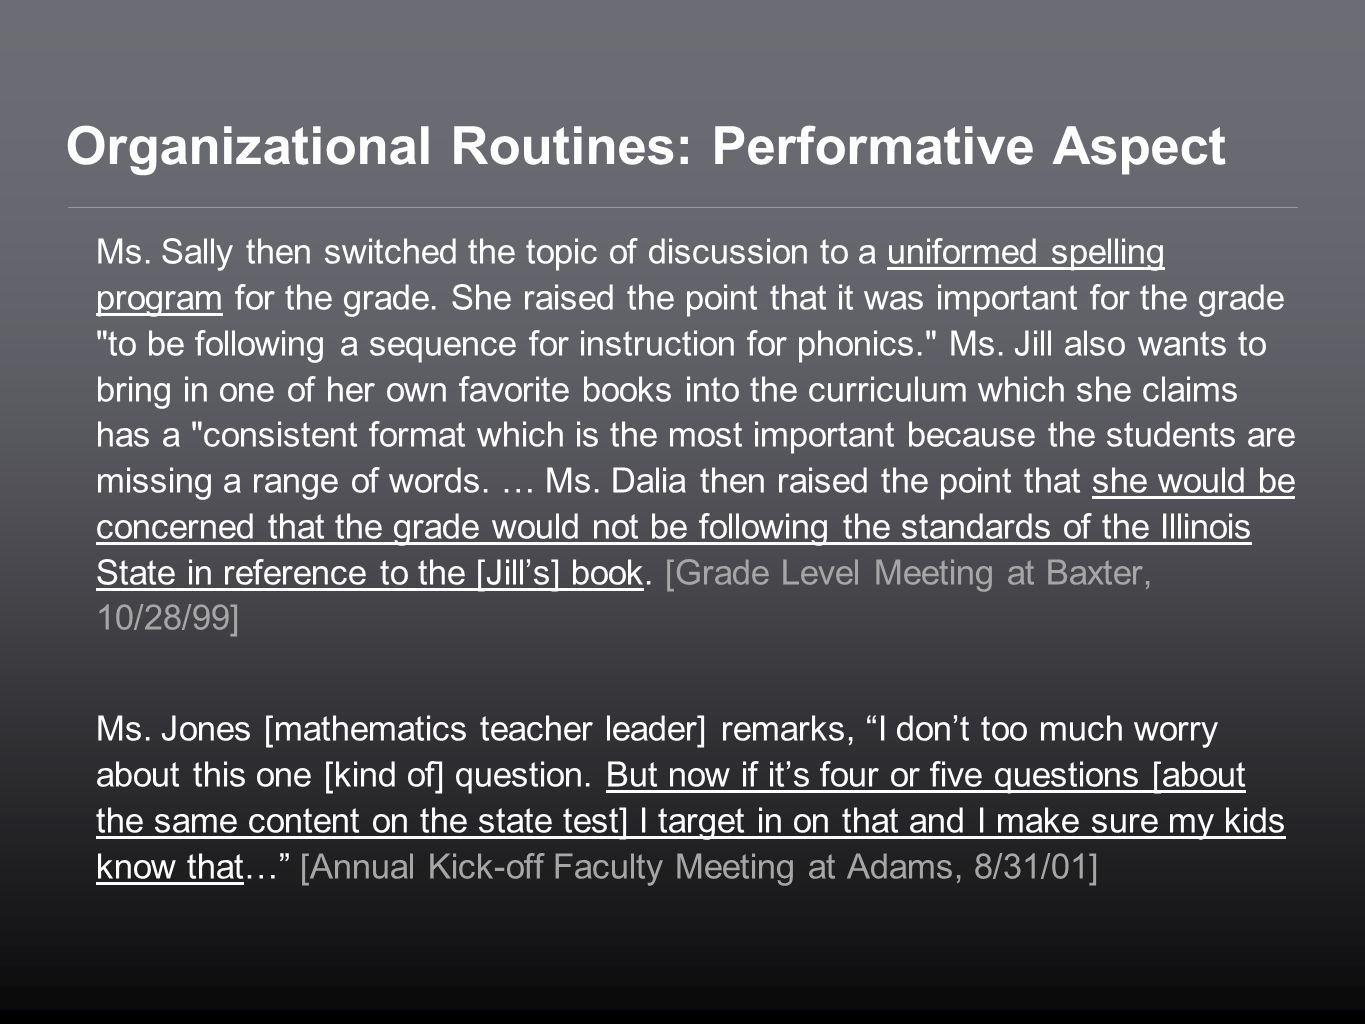 Organizational Routines: Performative Aspect